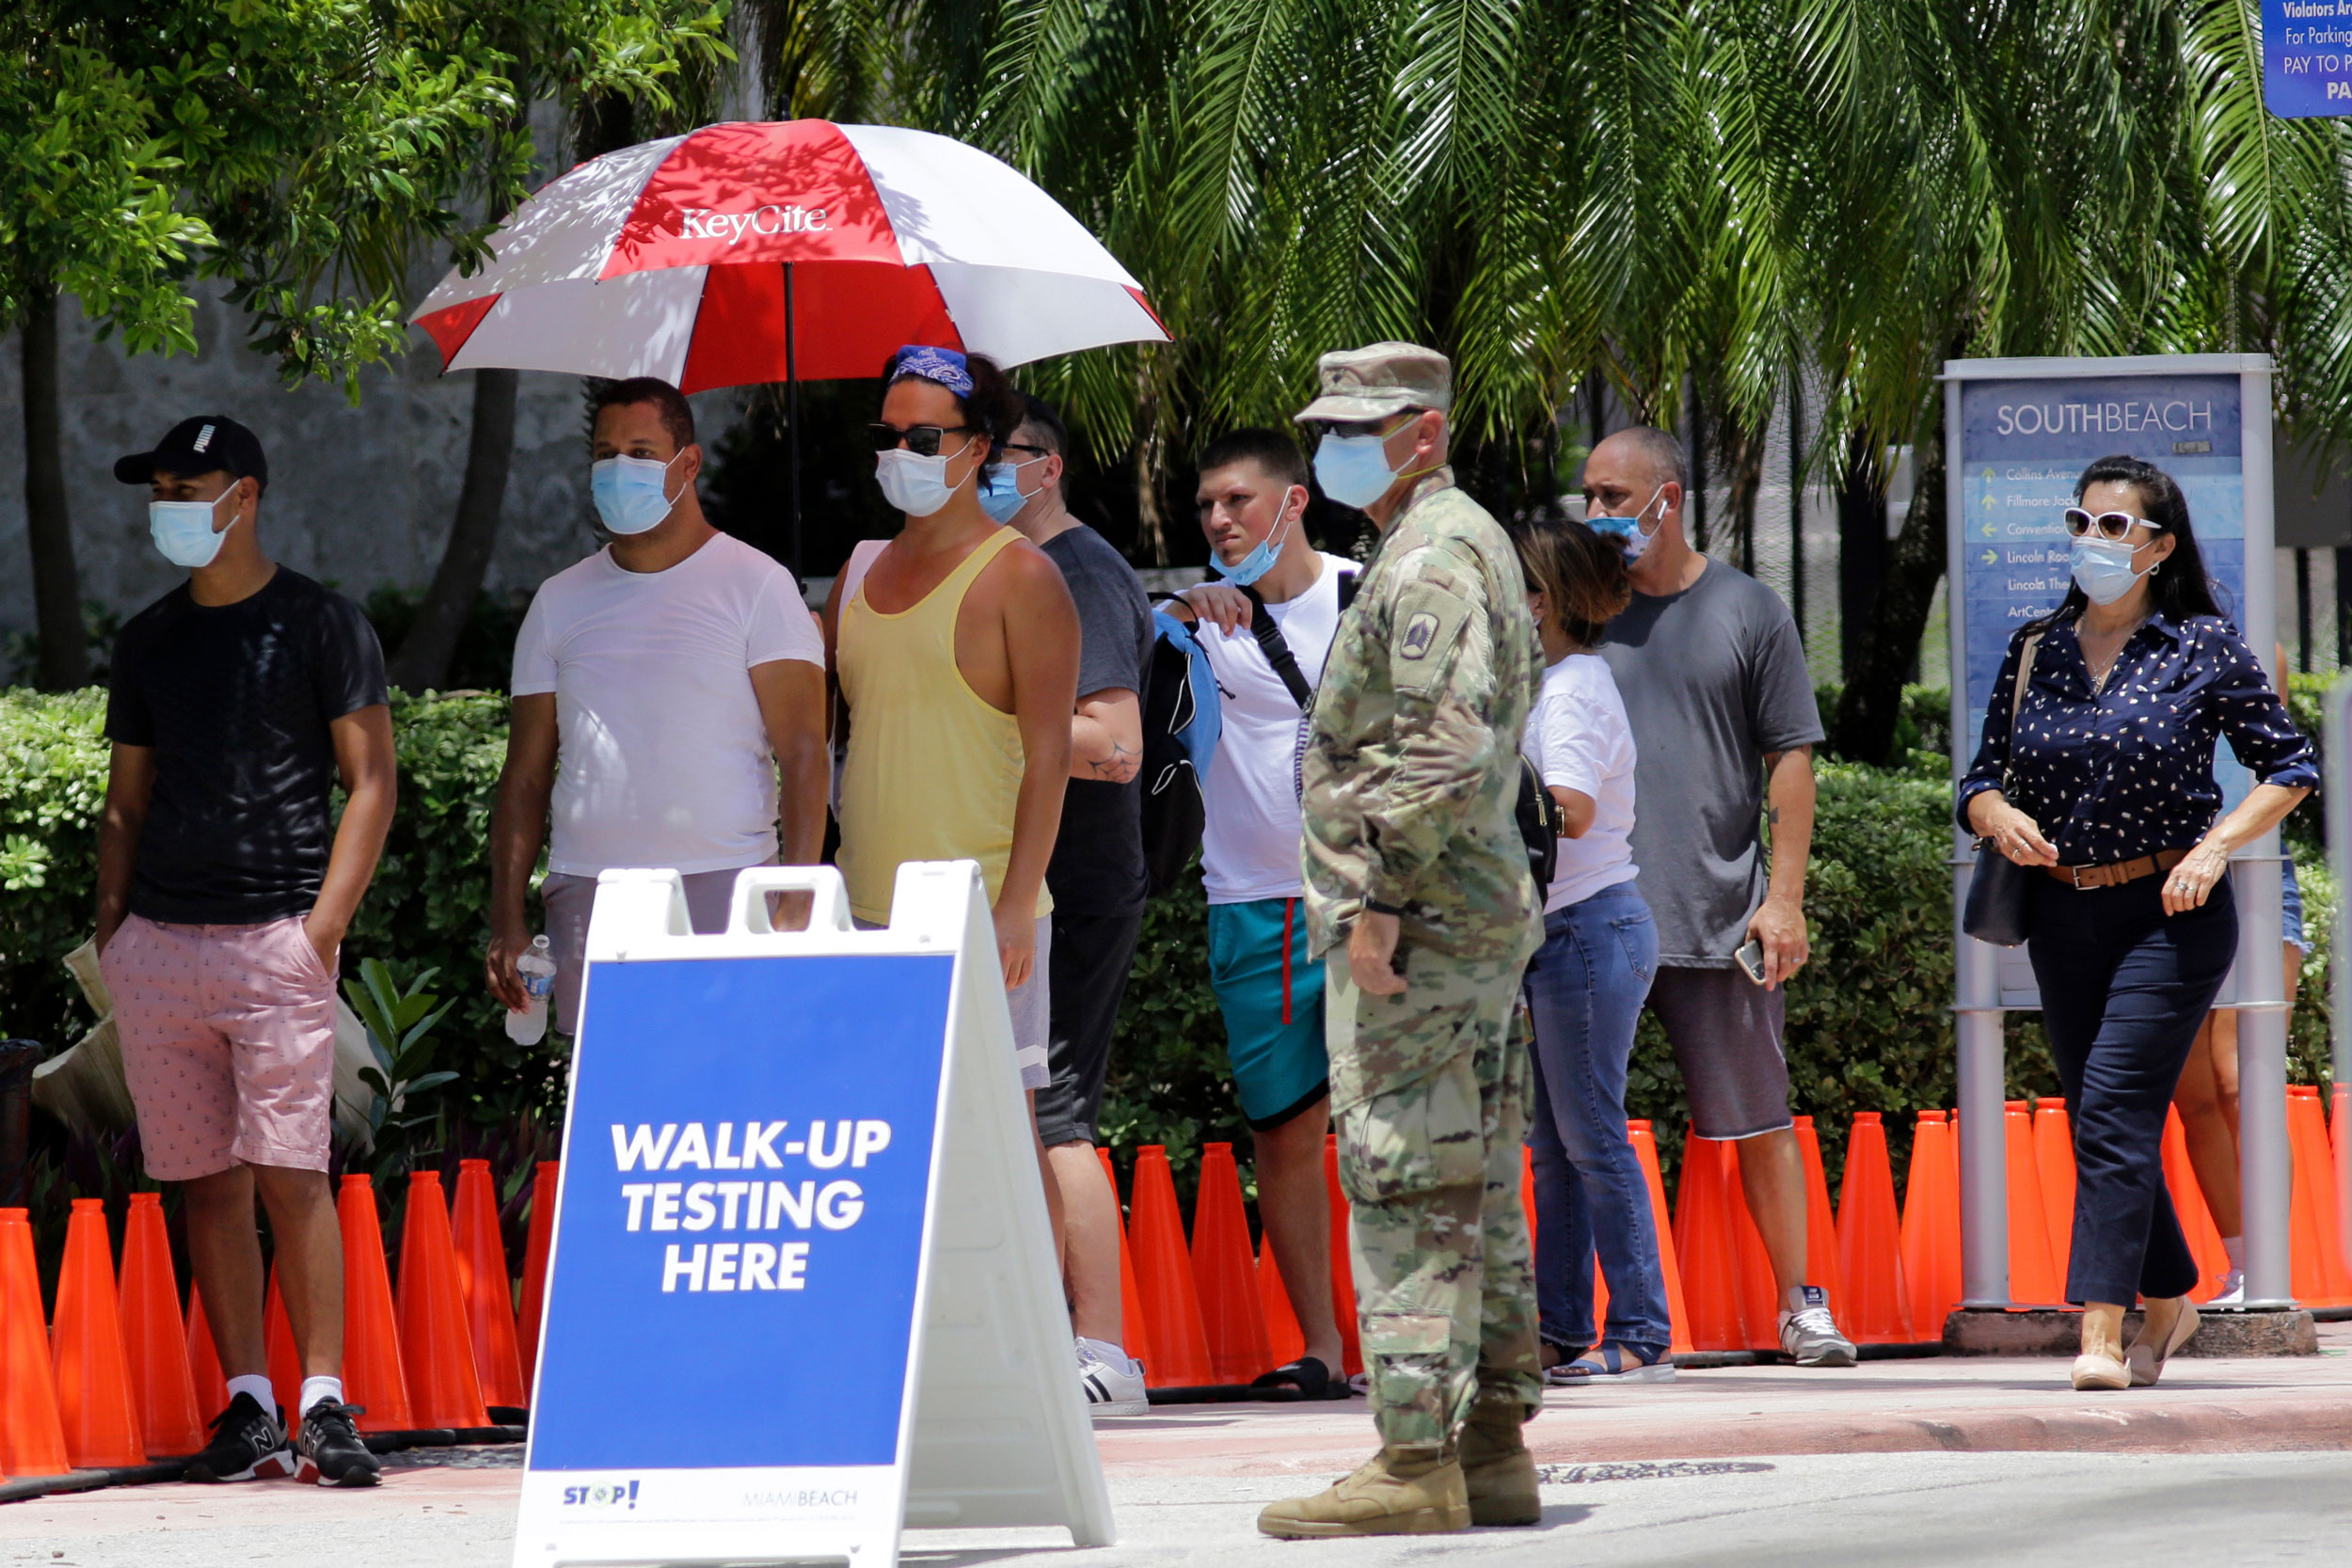 People wait in line at a walk-up testing site for COVID-19 during the new coronavirus pandemic, Tuesday, June 30, 2020, in Miami Beach, Flao